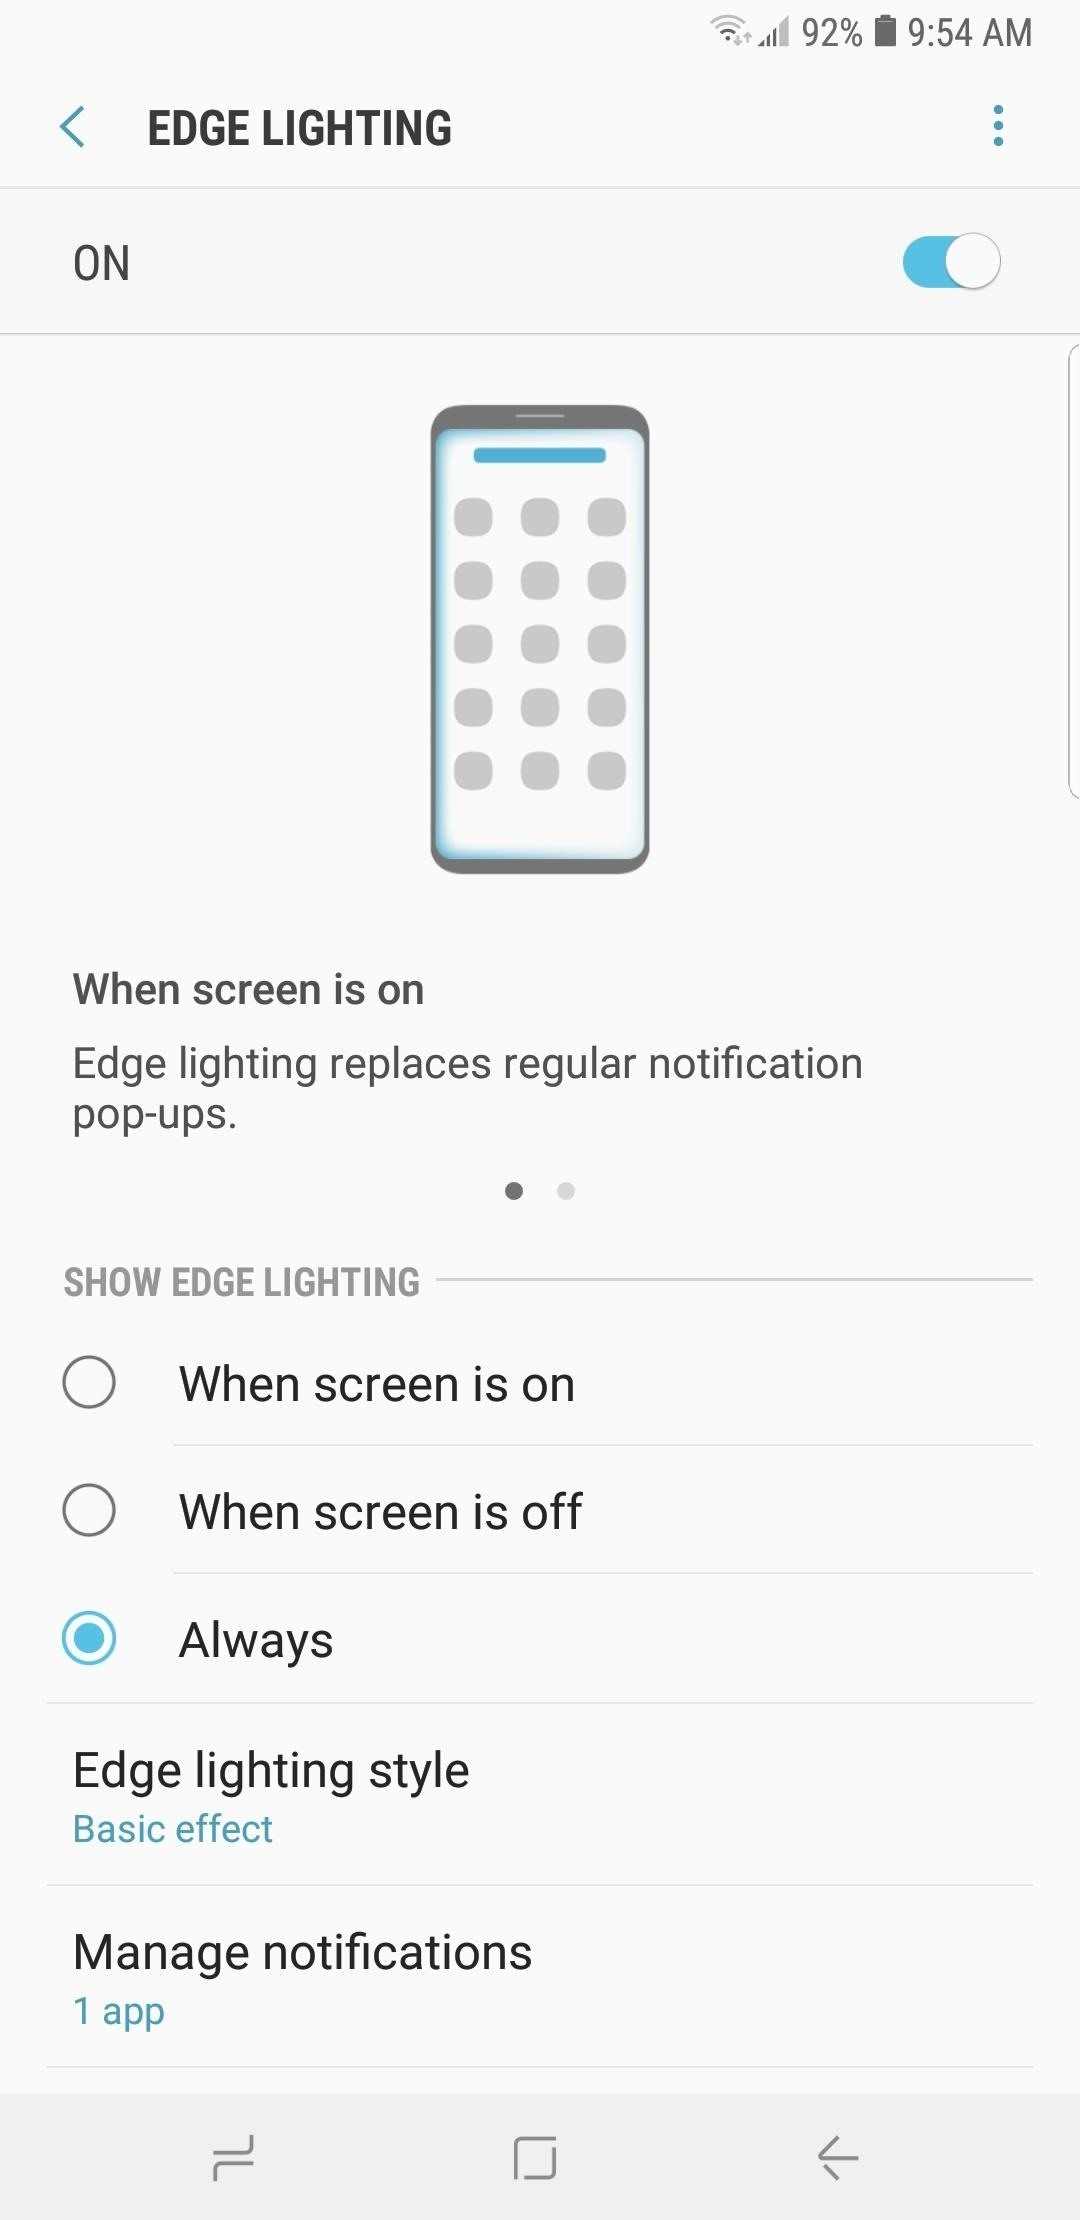 Samsung Android Pie Update: Galaxy devices are getting better with edge lighting